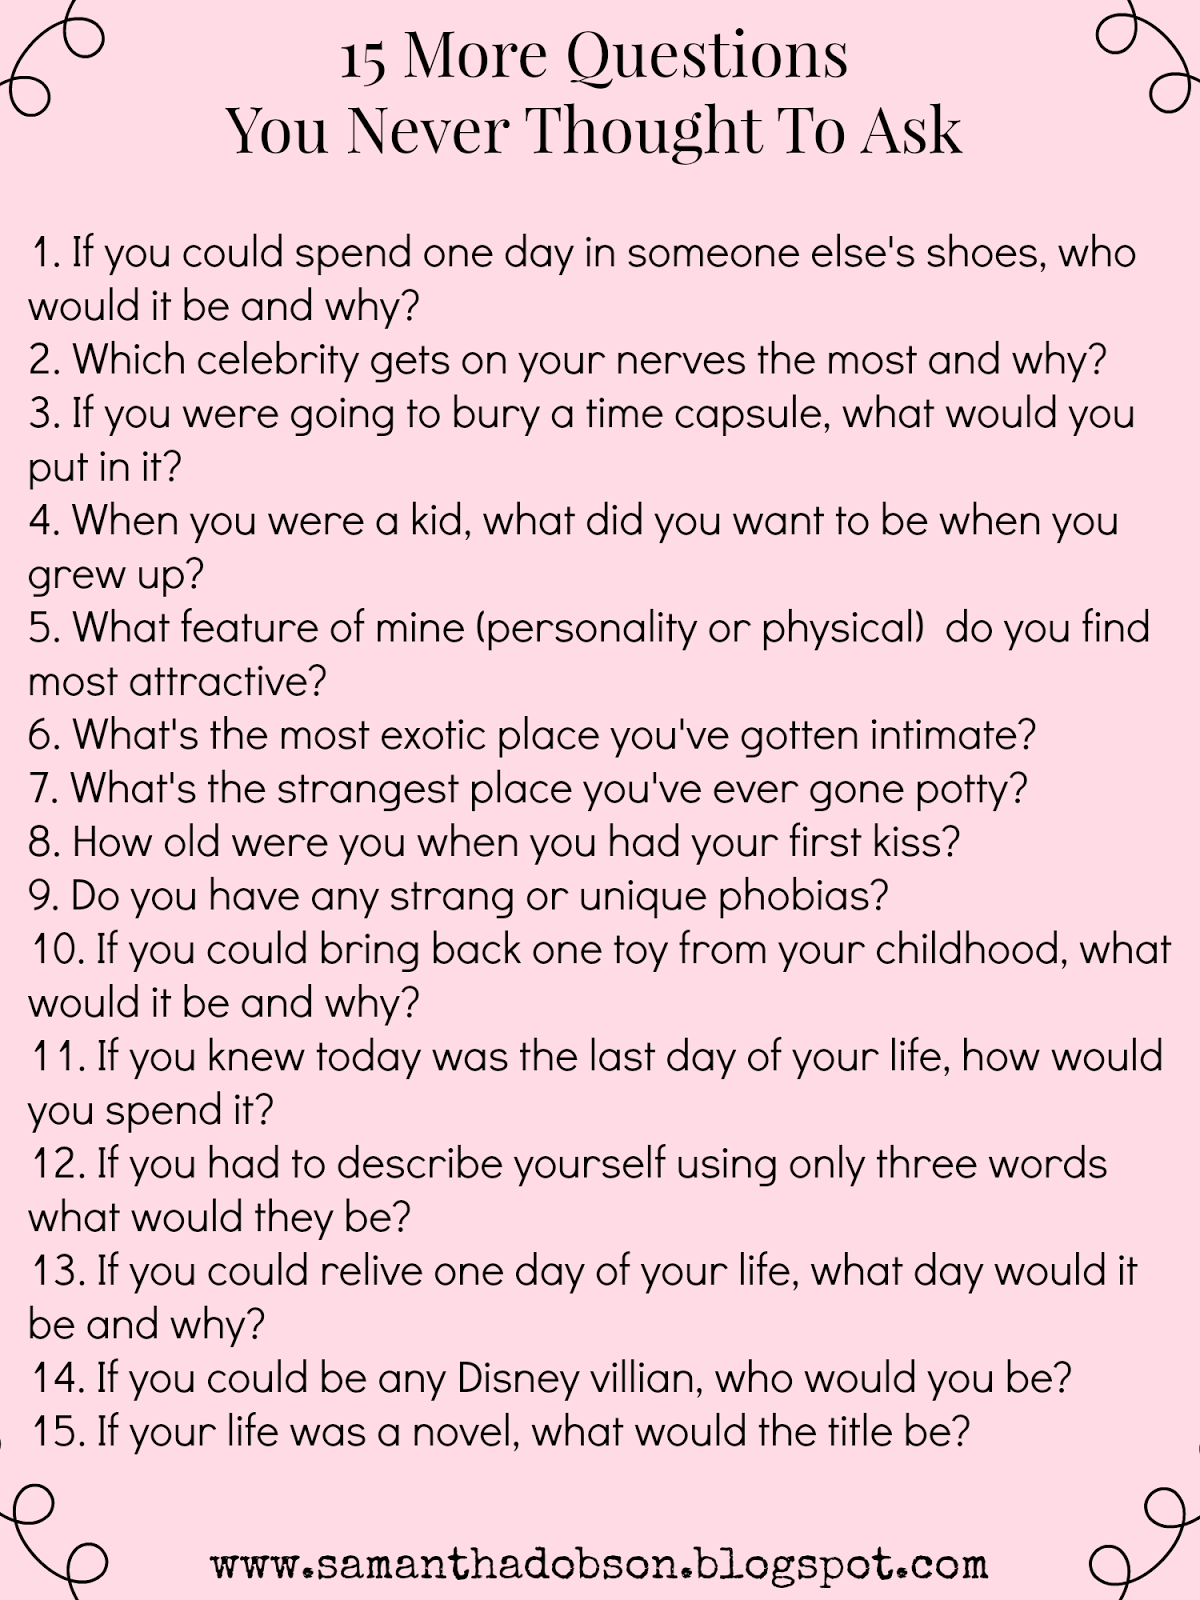 Sexual Questions For 20 Questions